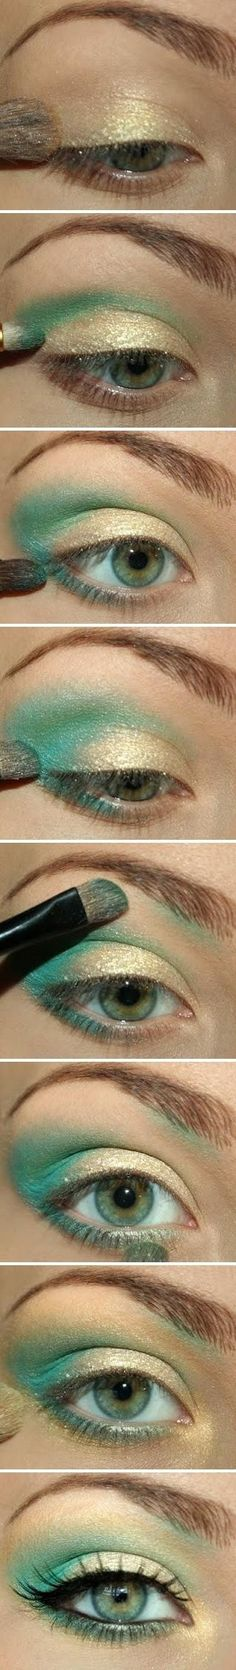 I am totally doing this for my stage/dance makeup!!!!!! Aqua and gold glitter. Mermaid make-up! @Paula manc manc Jones